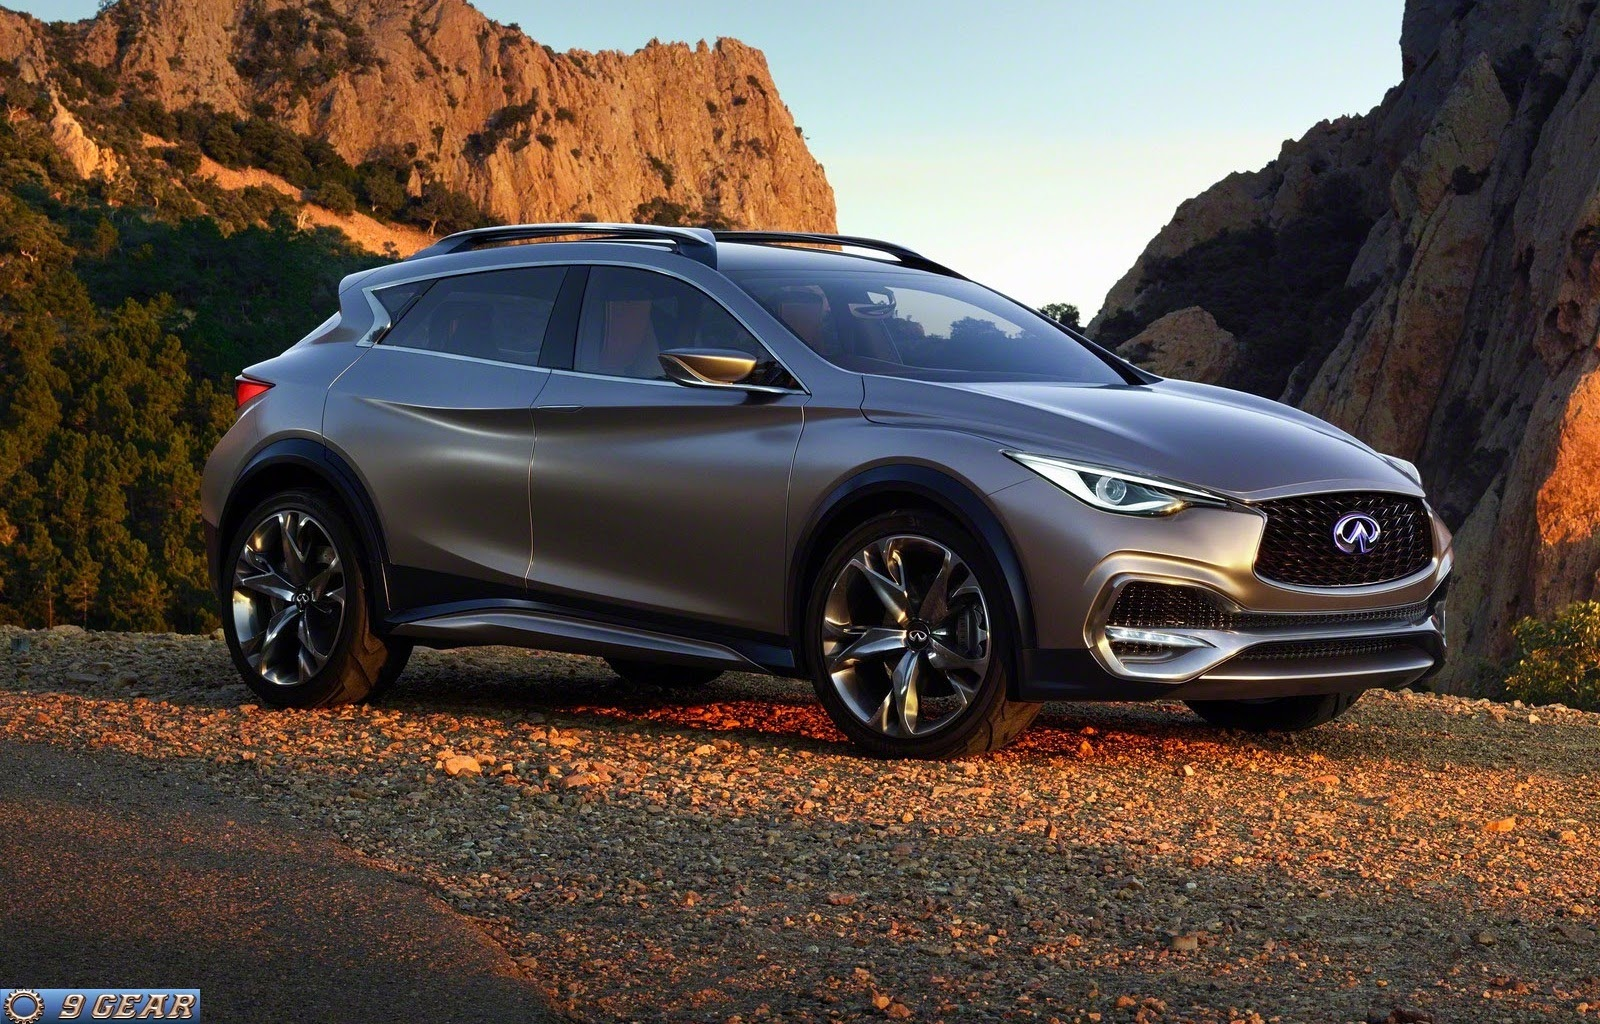 new infiniti qx30 crossover revealed car reviews new car pictures for 2018 2019. Black Bedroom Furniture Sets. Home Design Ideas